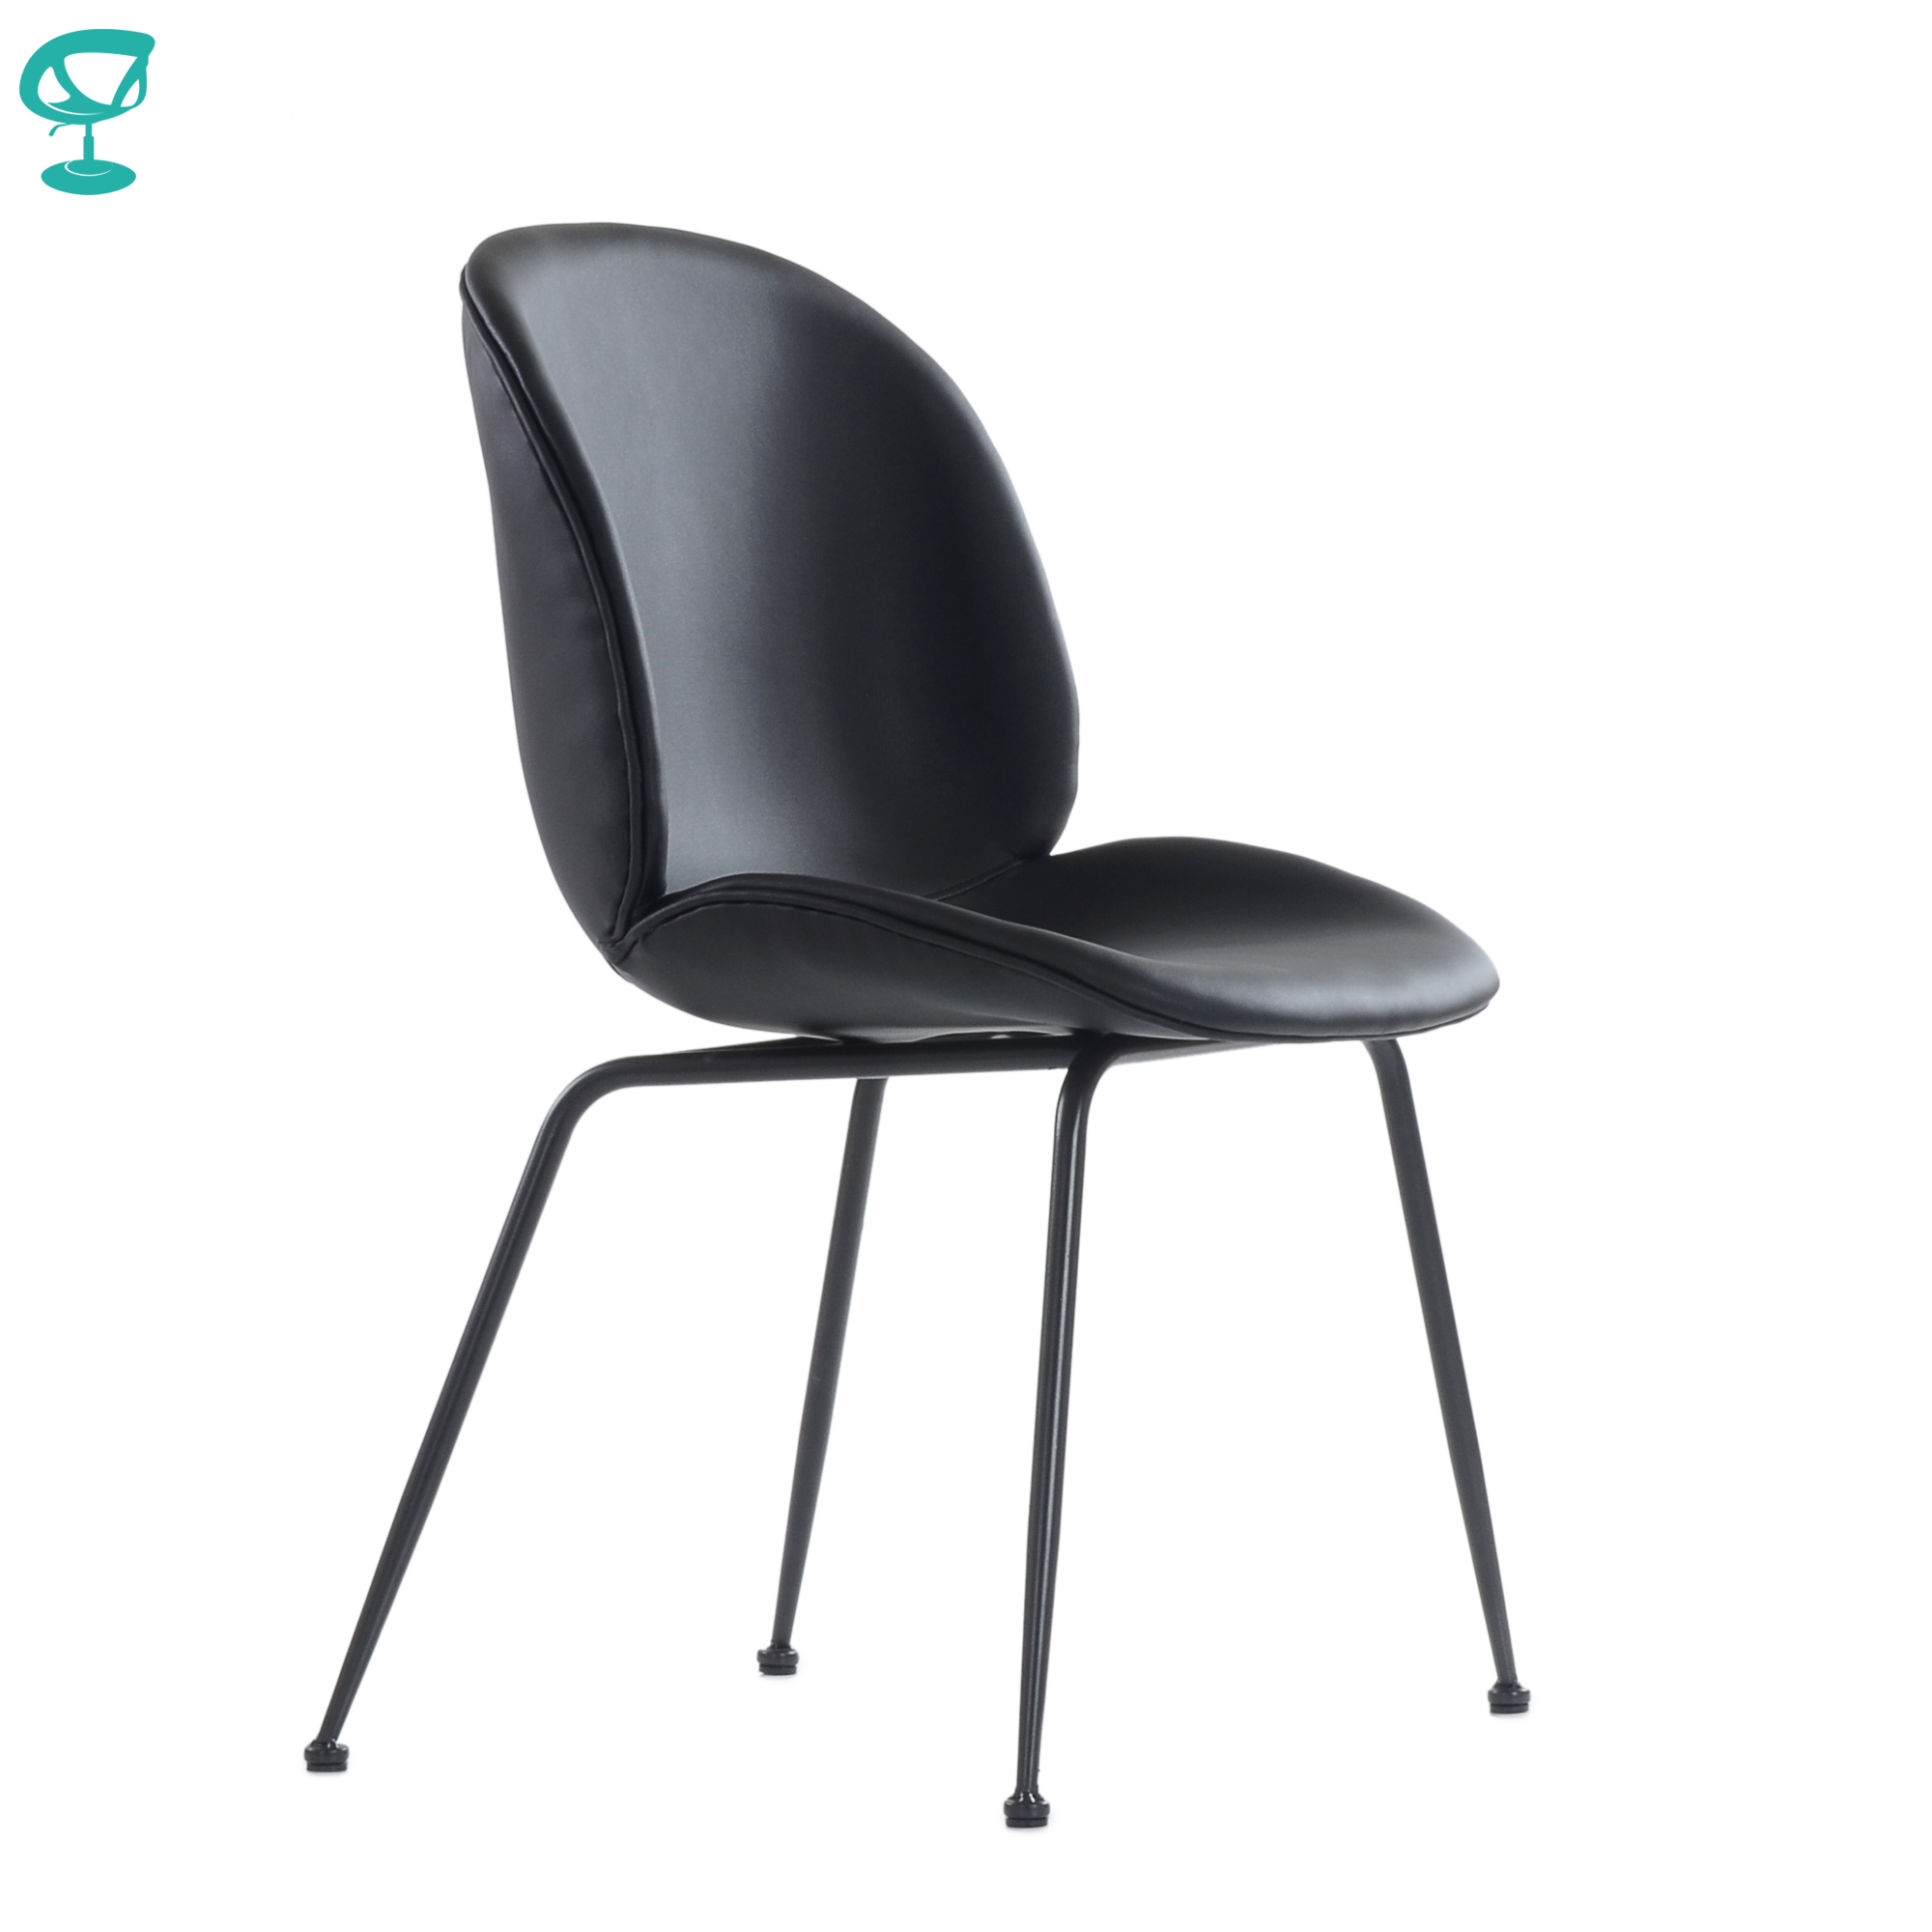 95743 Barneo S-17 Kitchen Chair On Metal Legs Seat Fabric Chair For Living Room Chair Dining Chair Furniture For Kitchen